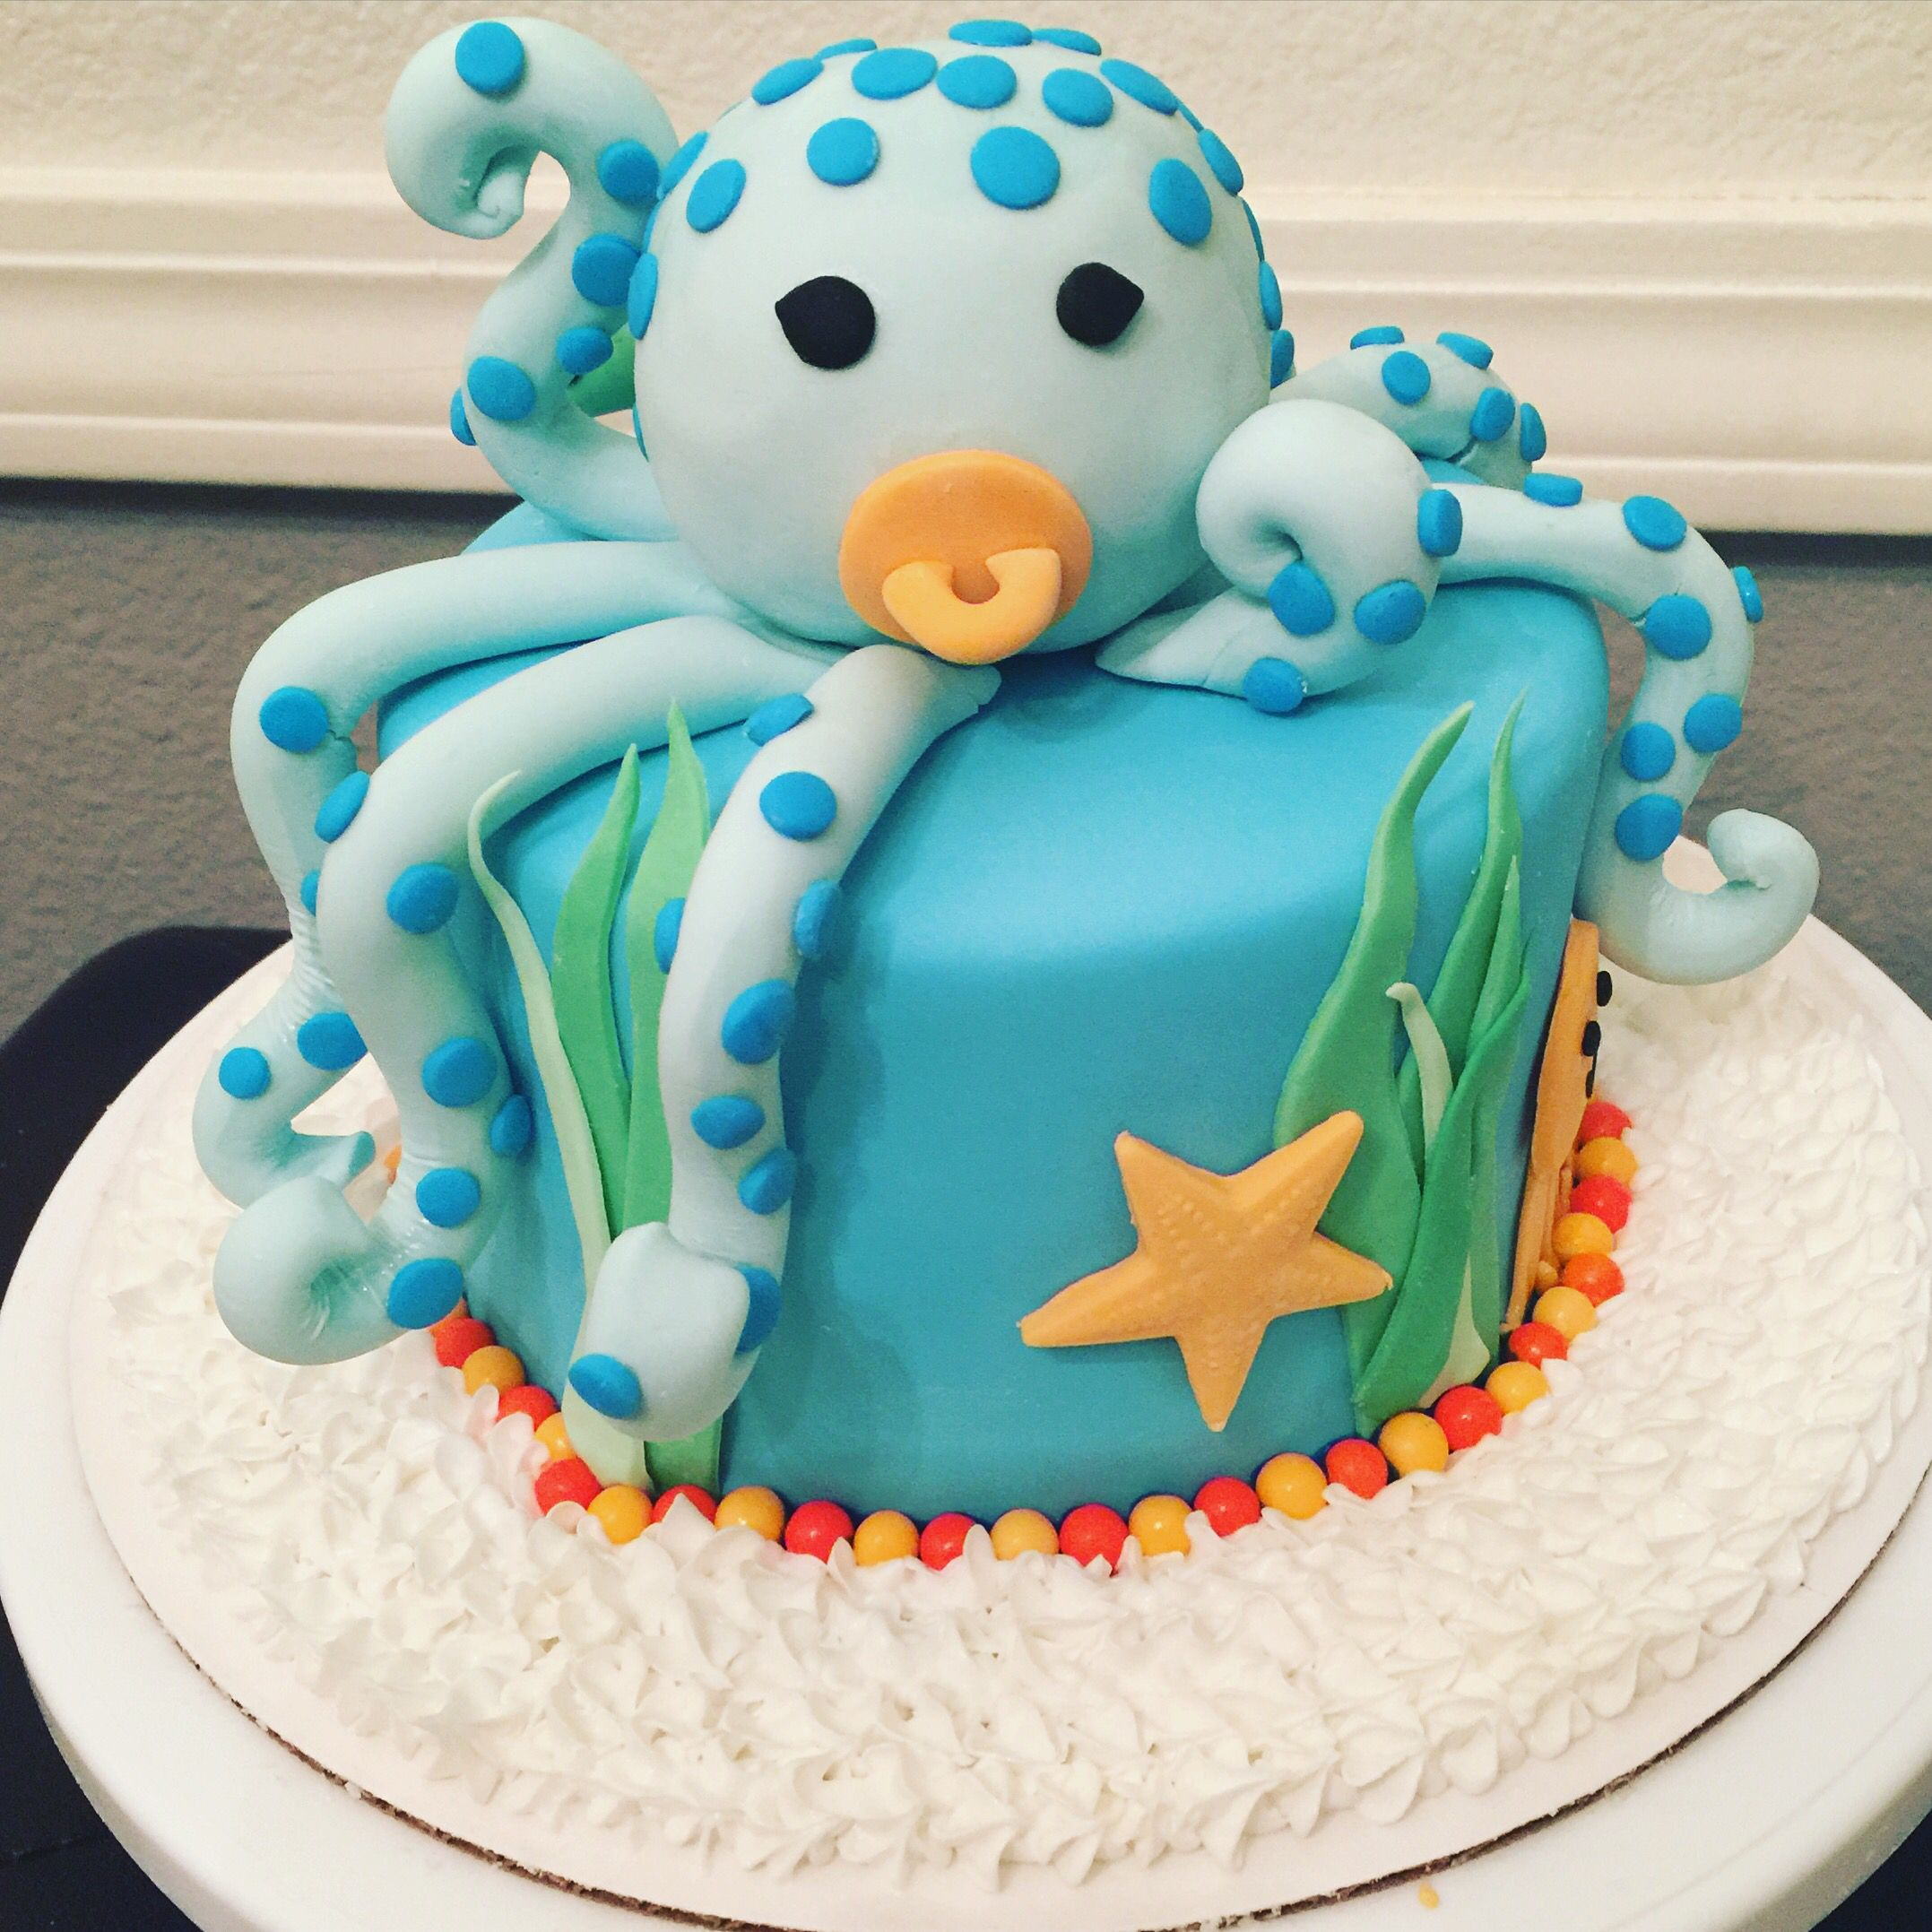 Boys Baby Shower Cake: It's A Boy, Baby Octopus Baby Shower Cake